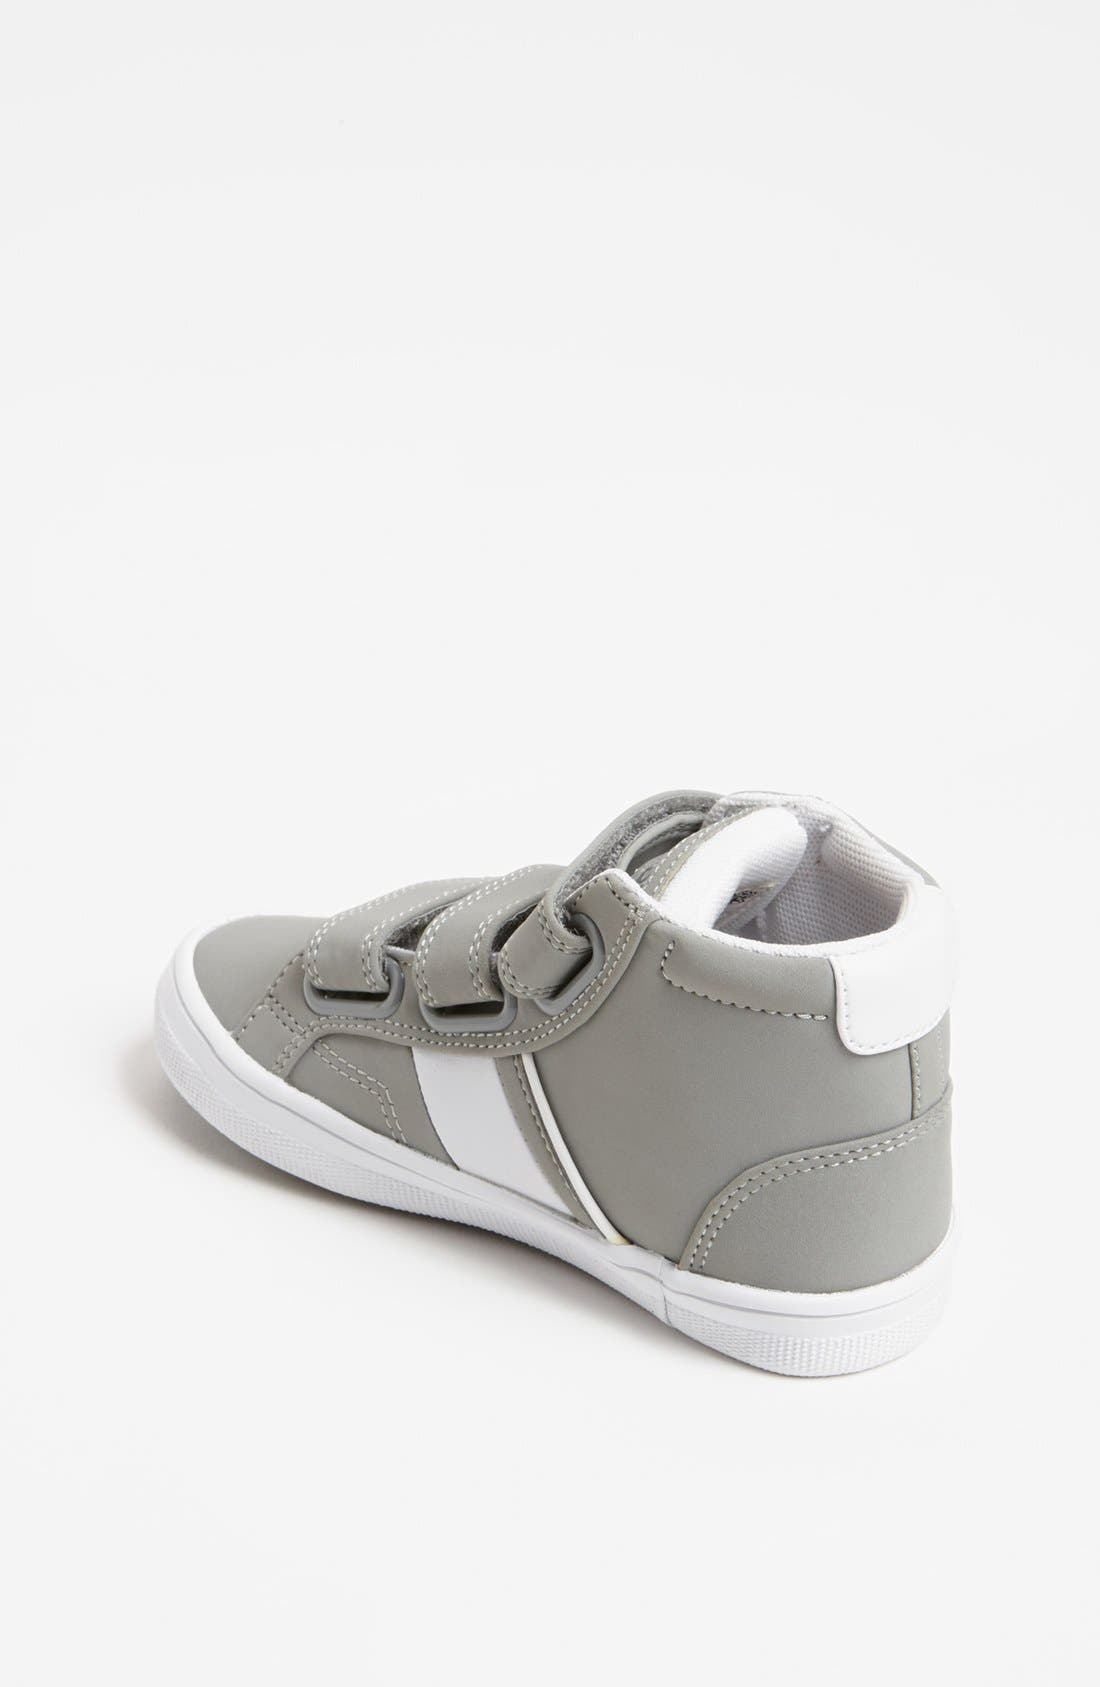 Alternate Image 2  - Lacoste 'Fairlead' Mid Sneaker (Toddler)